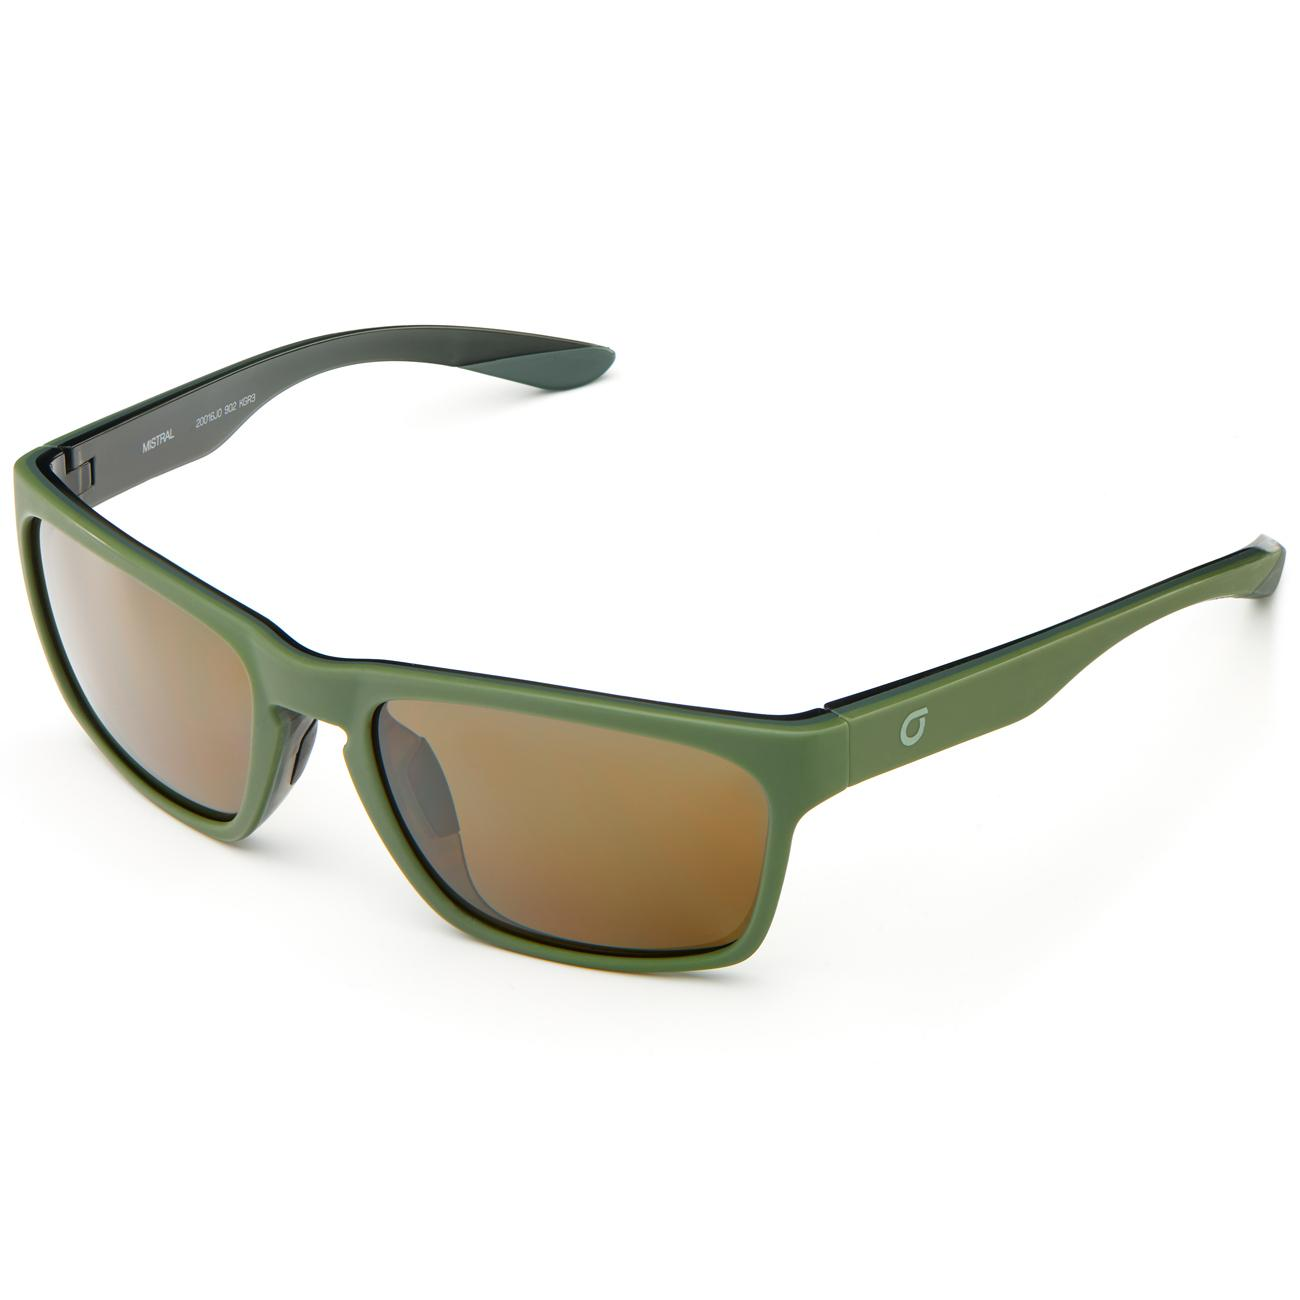 Afbeelding Briko Casual zonnebril unisex Groen - Mistral Color HD Sunglasses Mt Green Cry -Kgr3